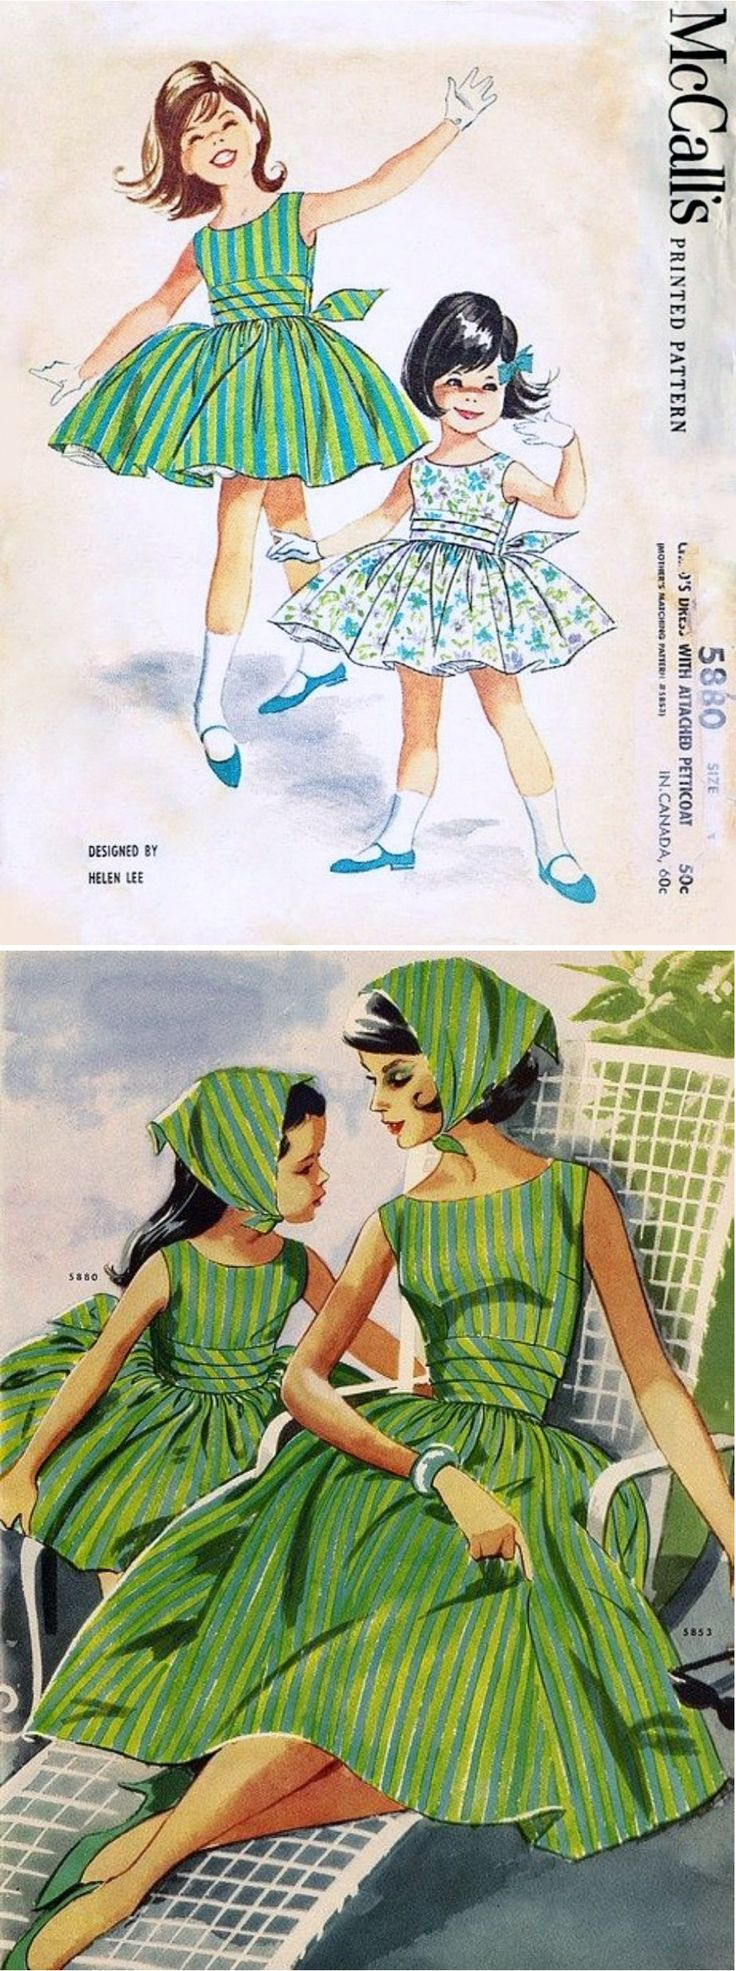 McCall's 5880 and matching mother's pattern McCall's 5853 by Helen Lee © 1961.